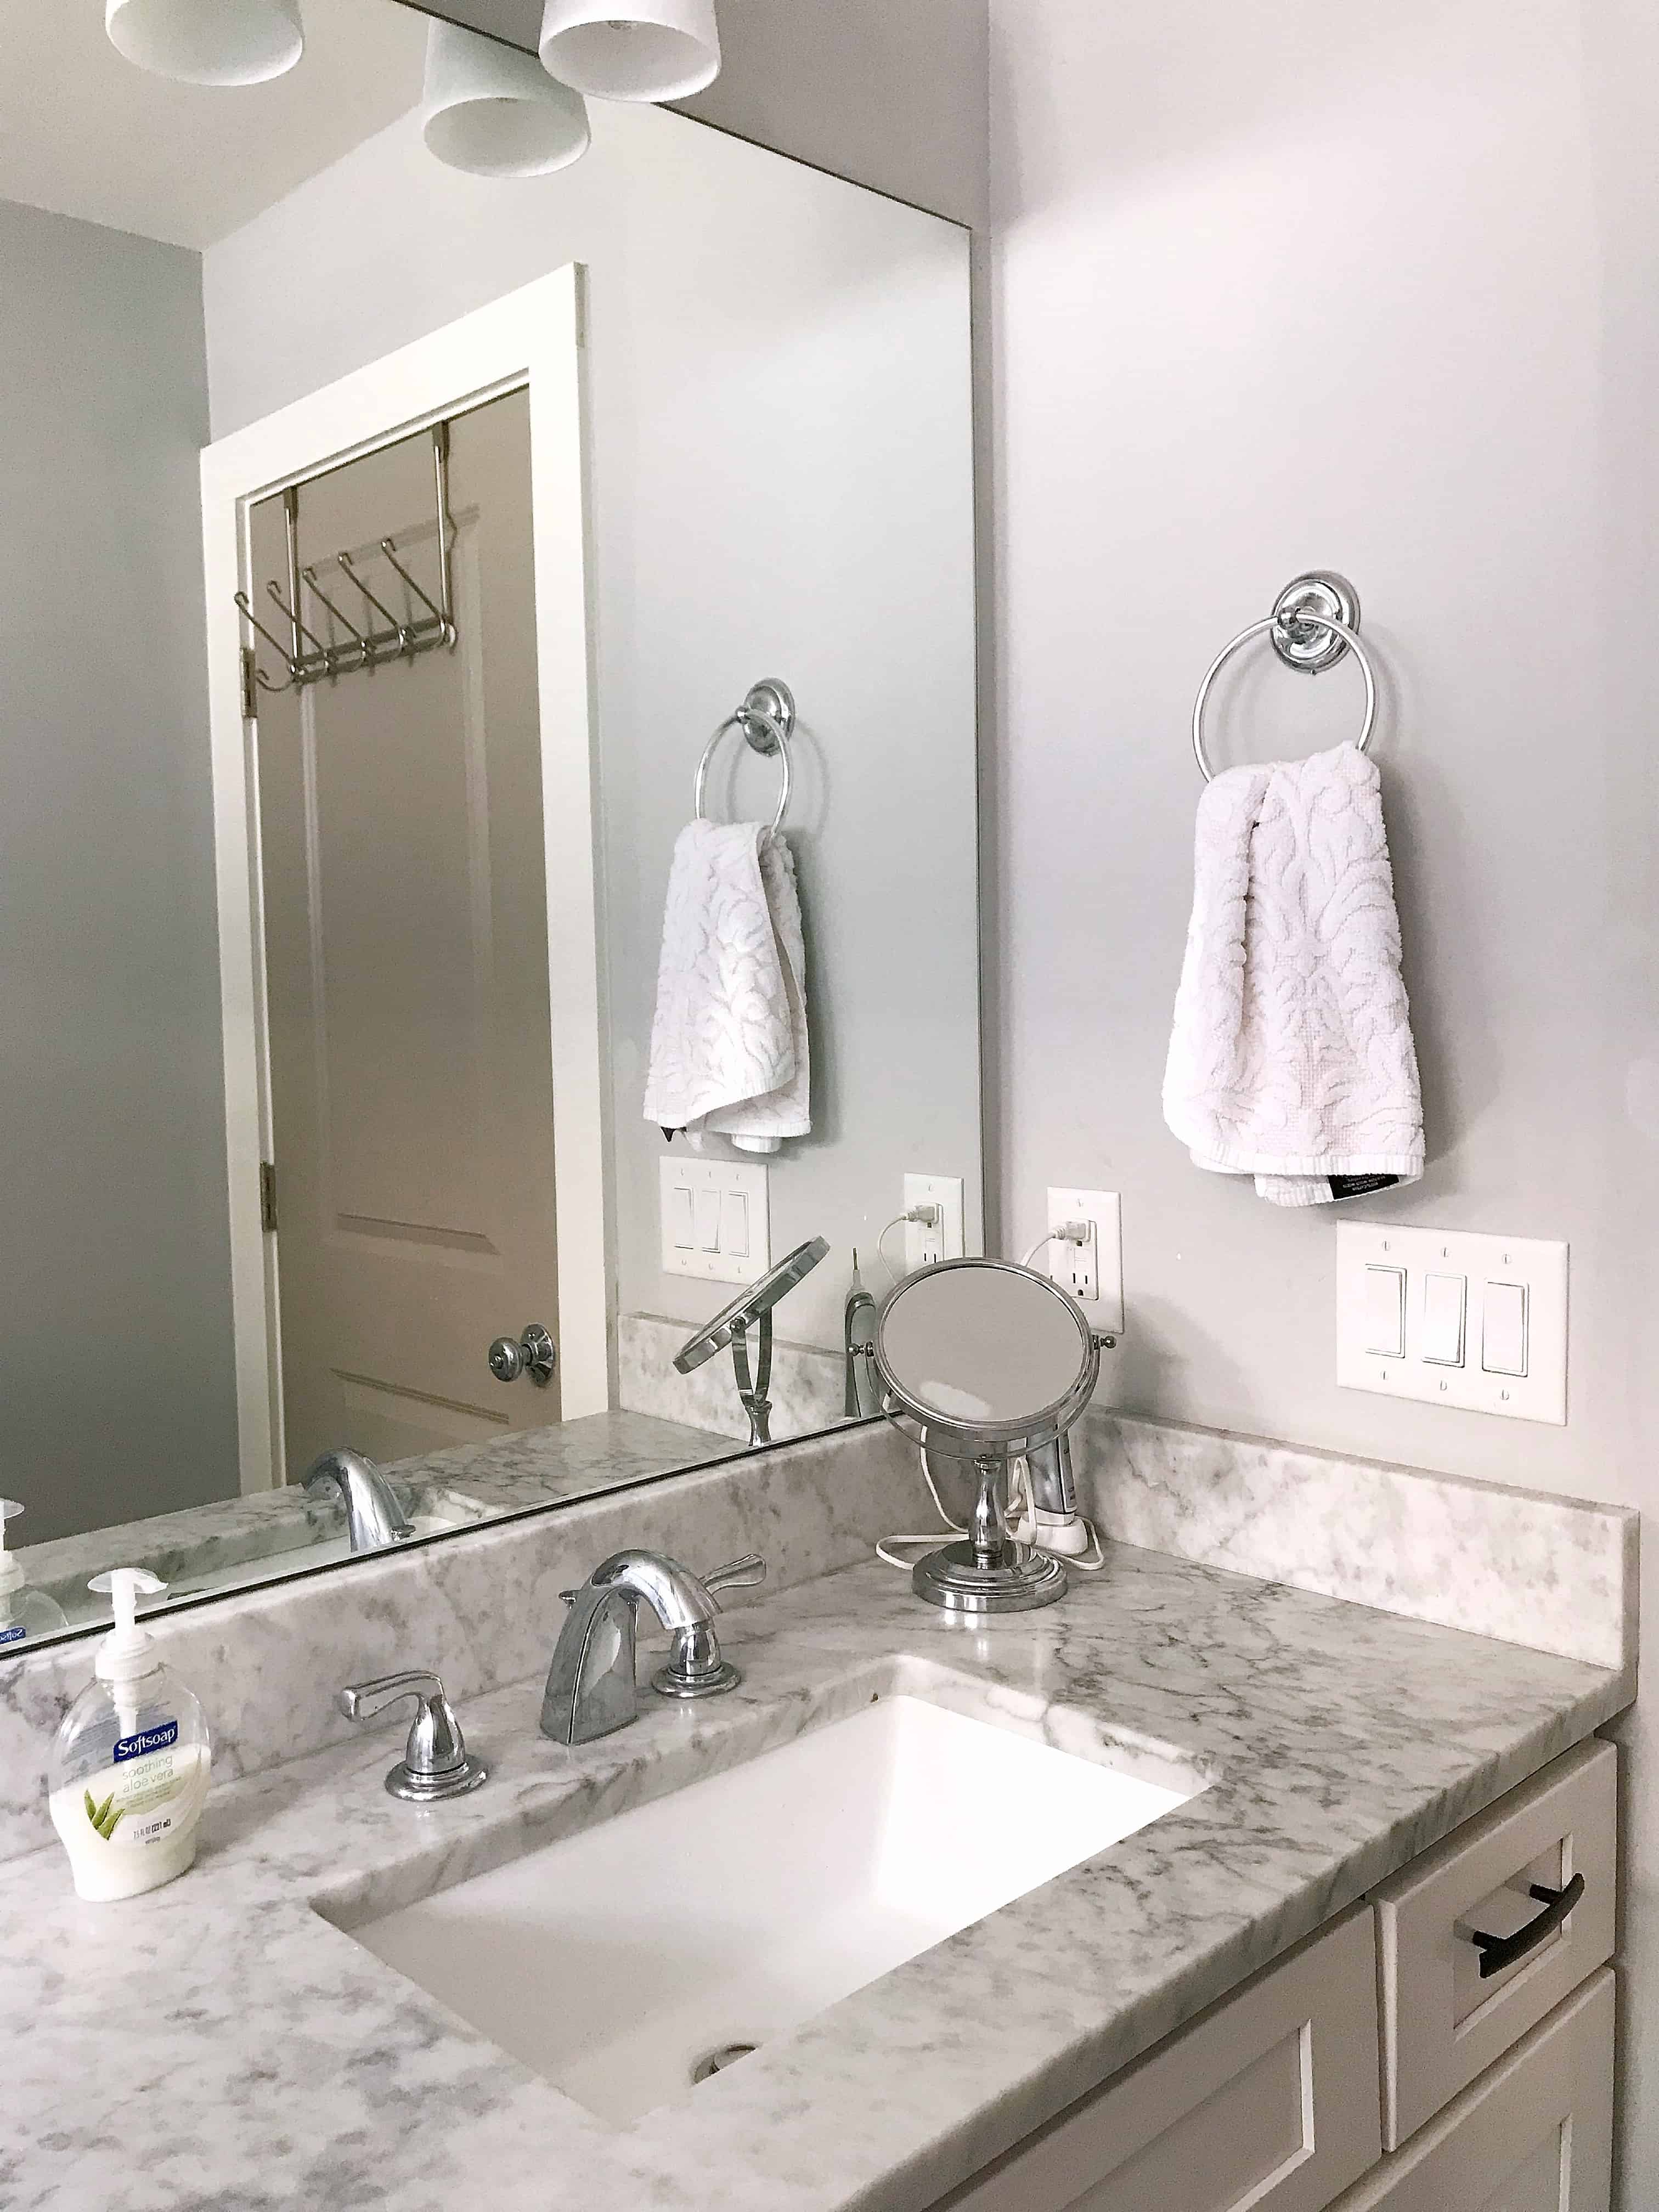 Bathroom with marble sink surround